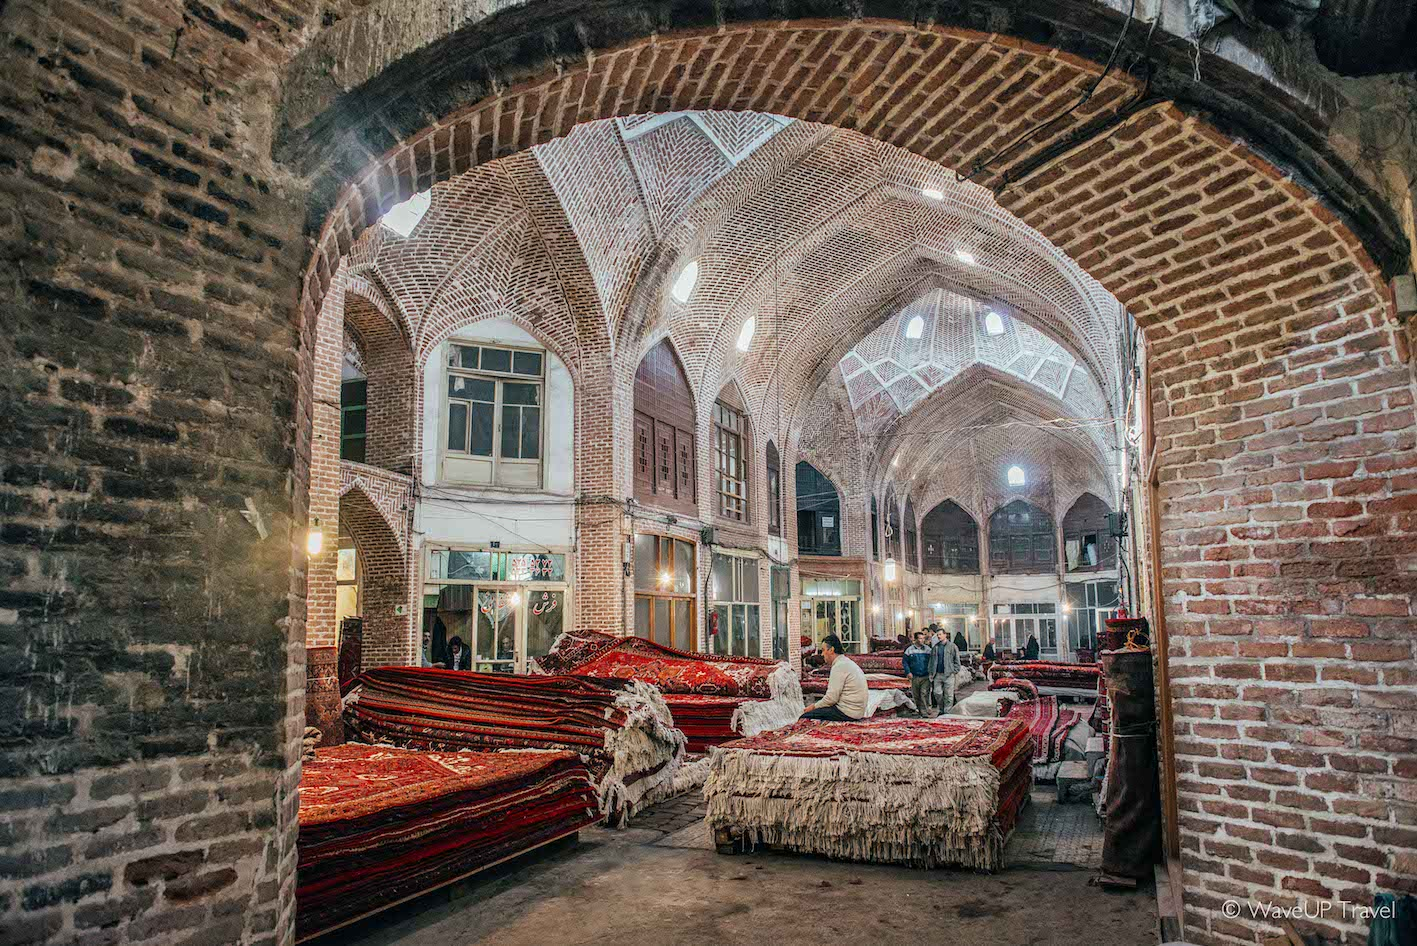 Iran sights: top to see -bazaar